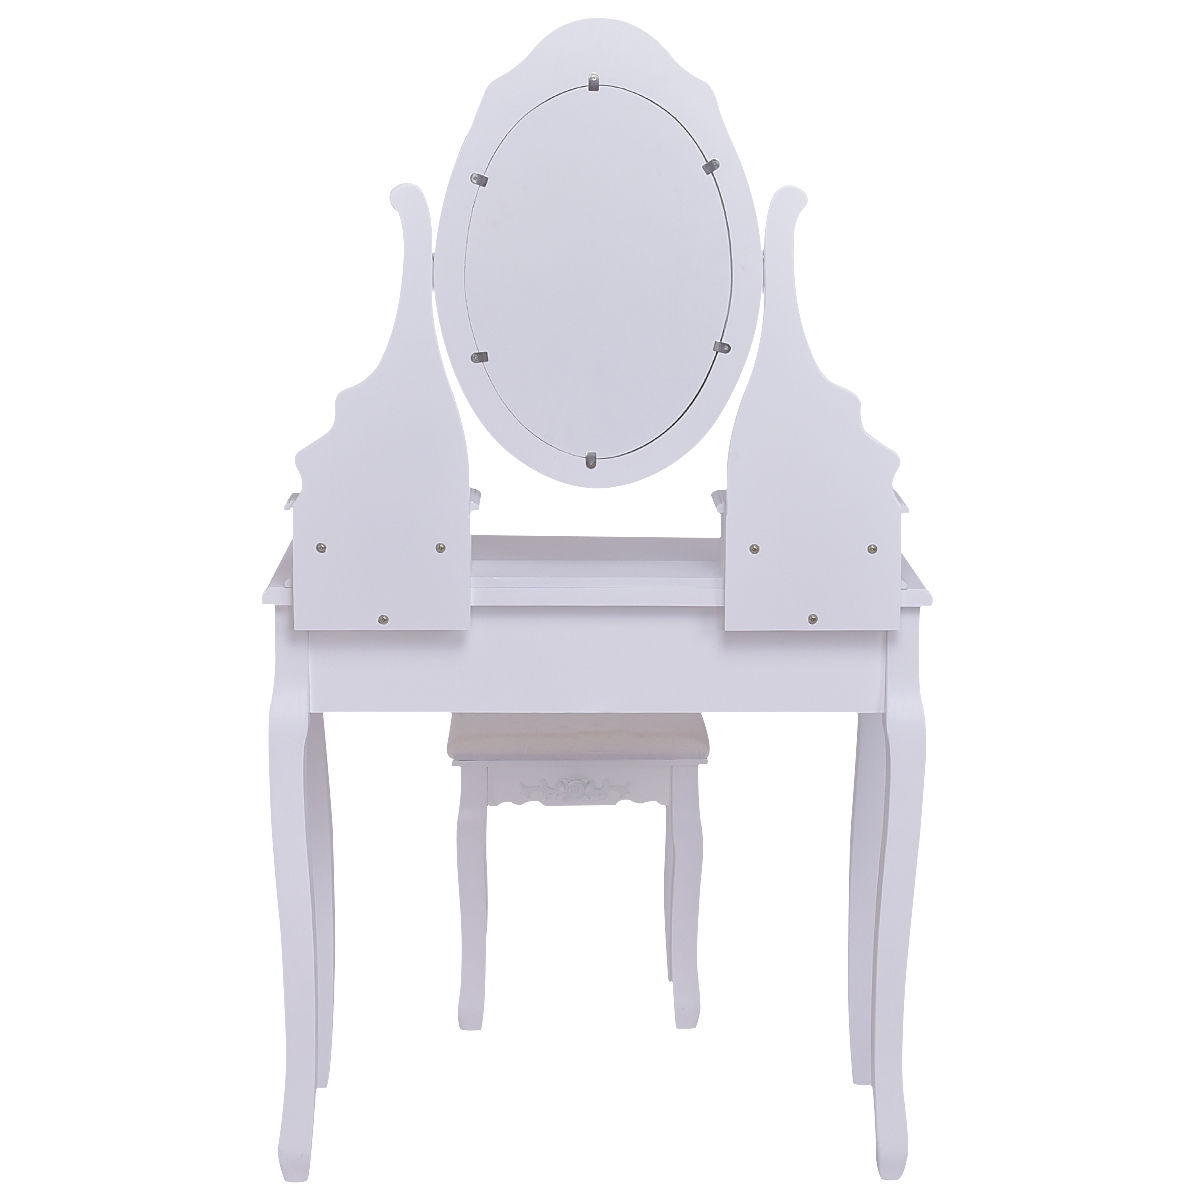 Mirrored Jewelry Wooden Vanity Table Set w/ 5 Drawers